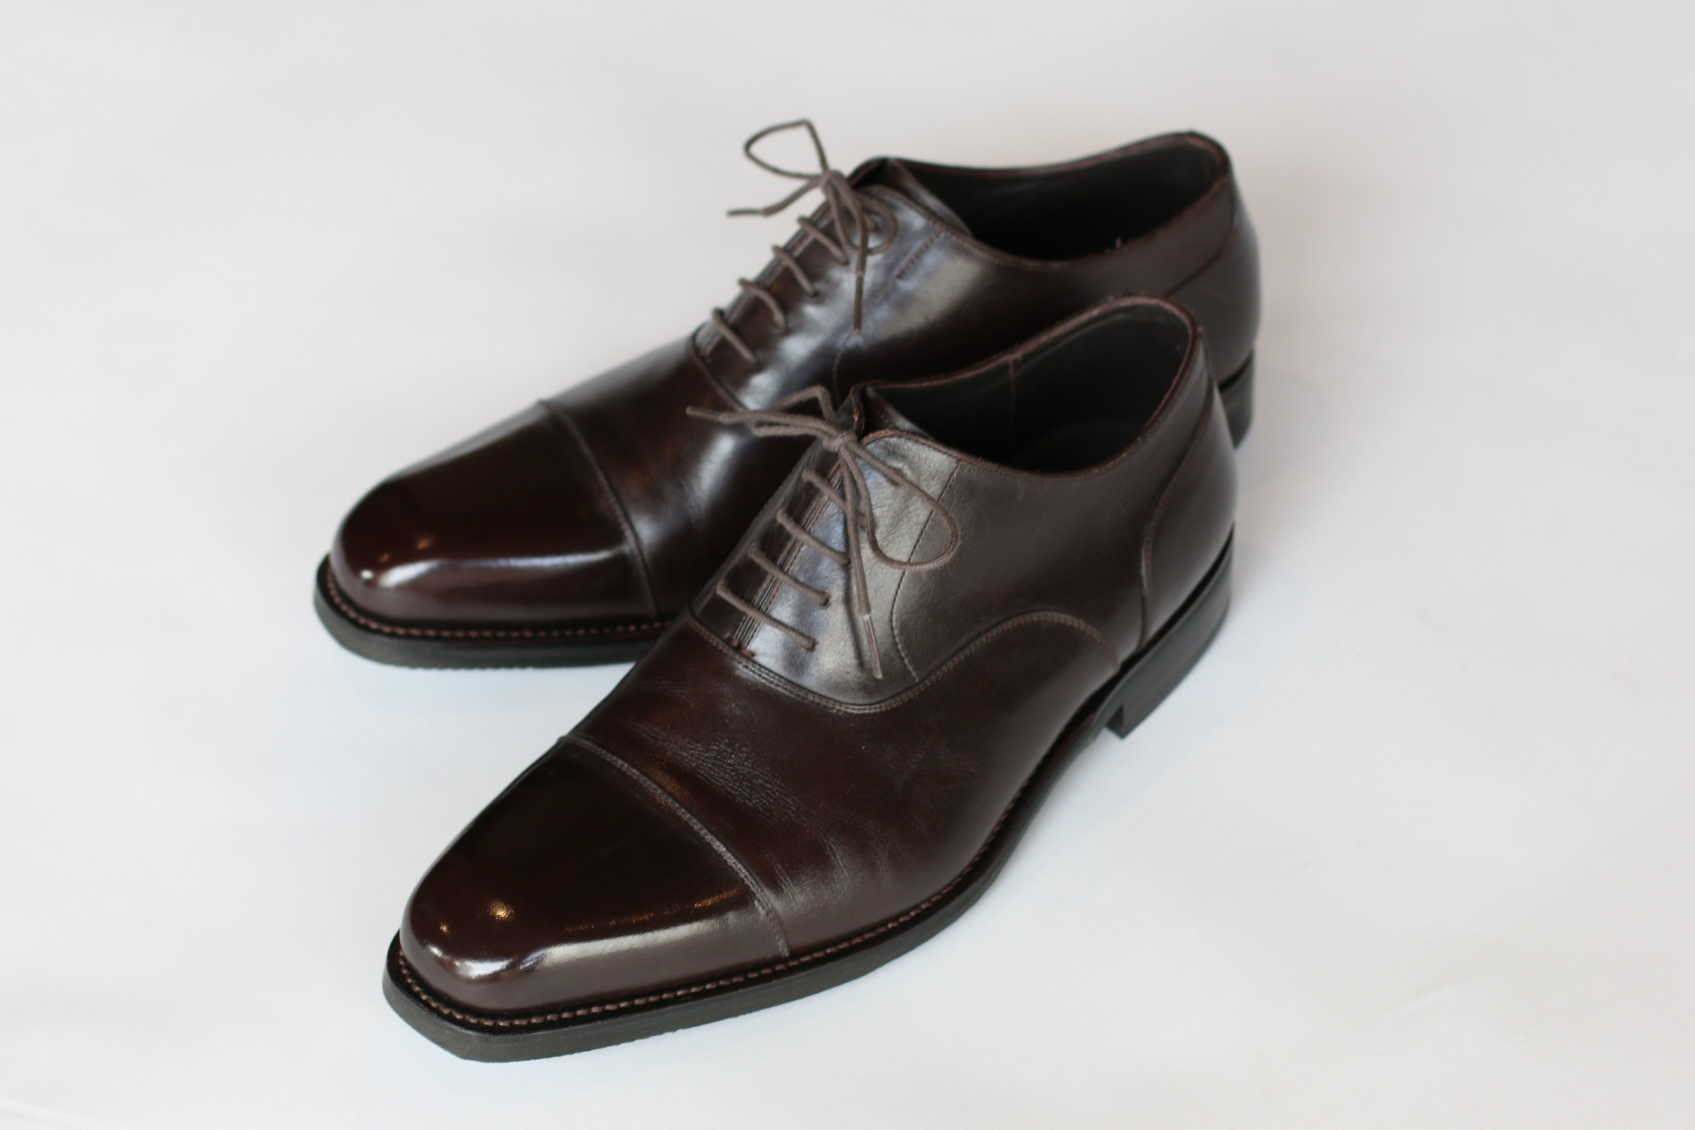 Business casual shoes eyecatch